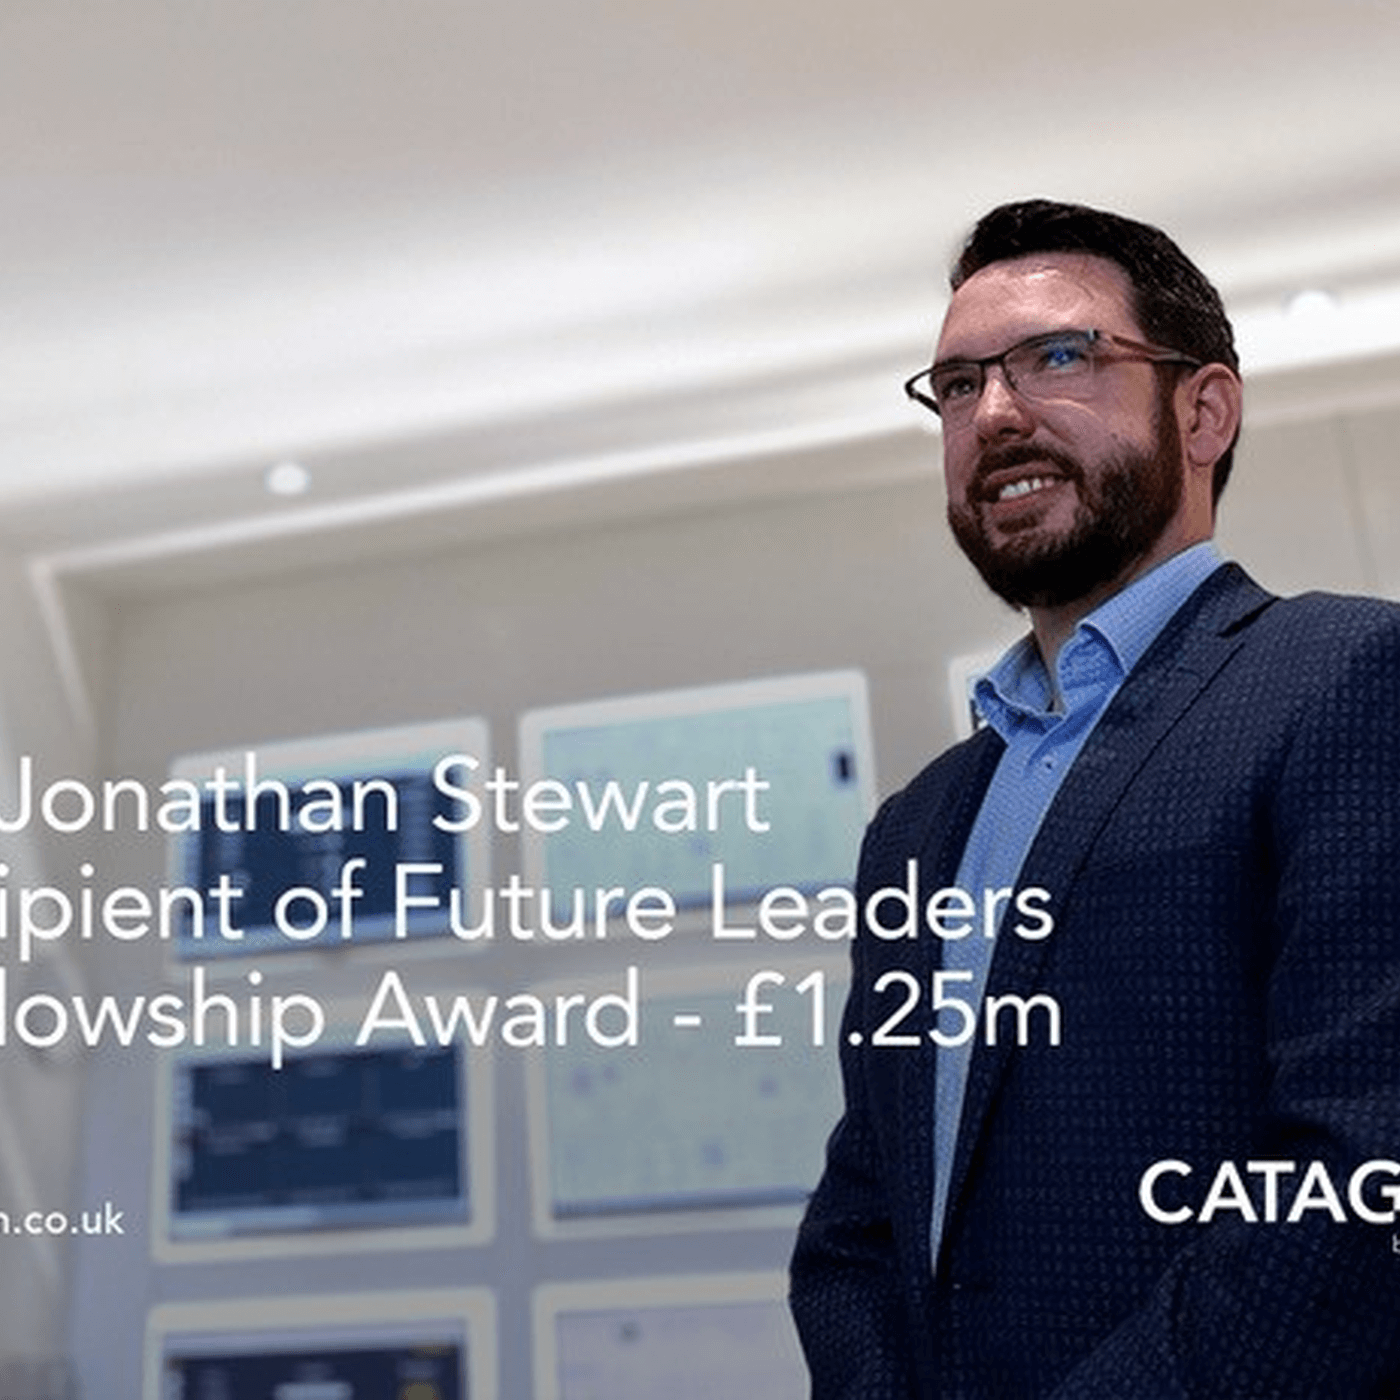 CATAGEN's Dr Jonathan Stewart wins £1.25m Future Leaders Fellowship Award